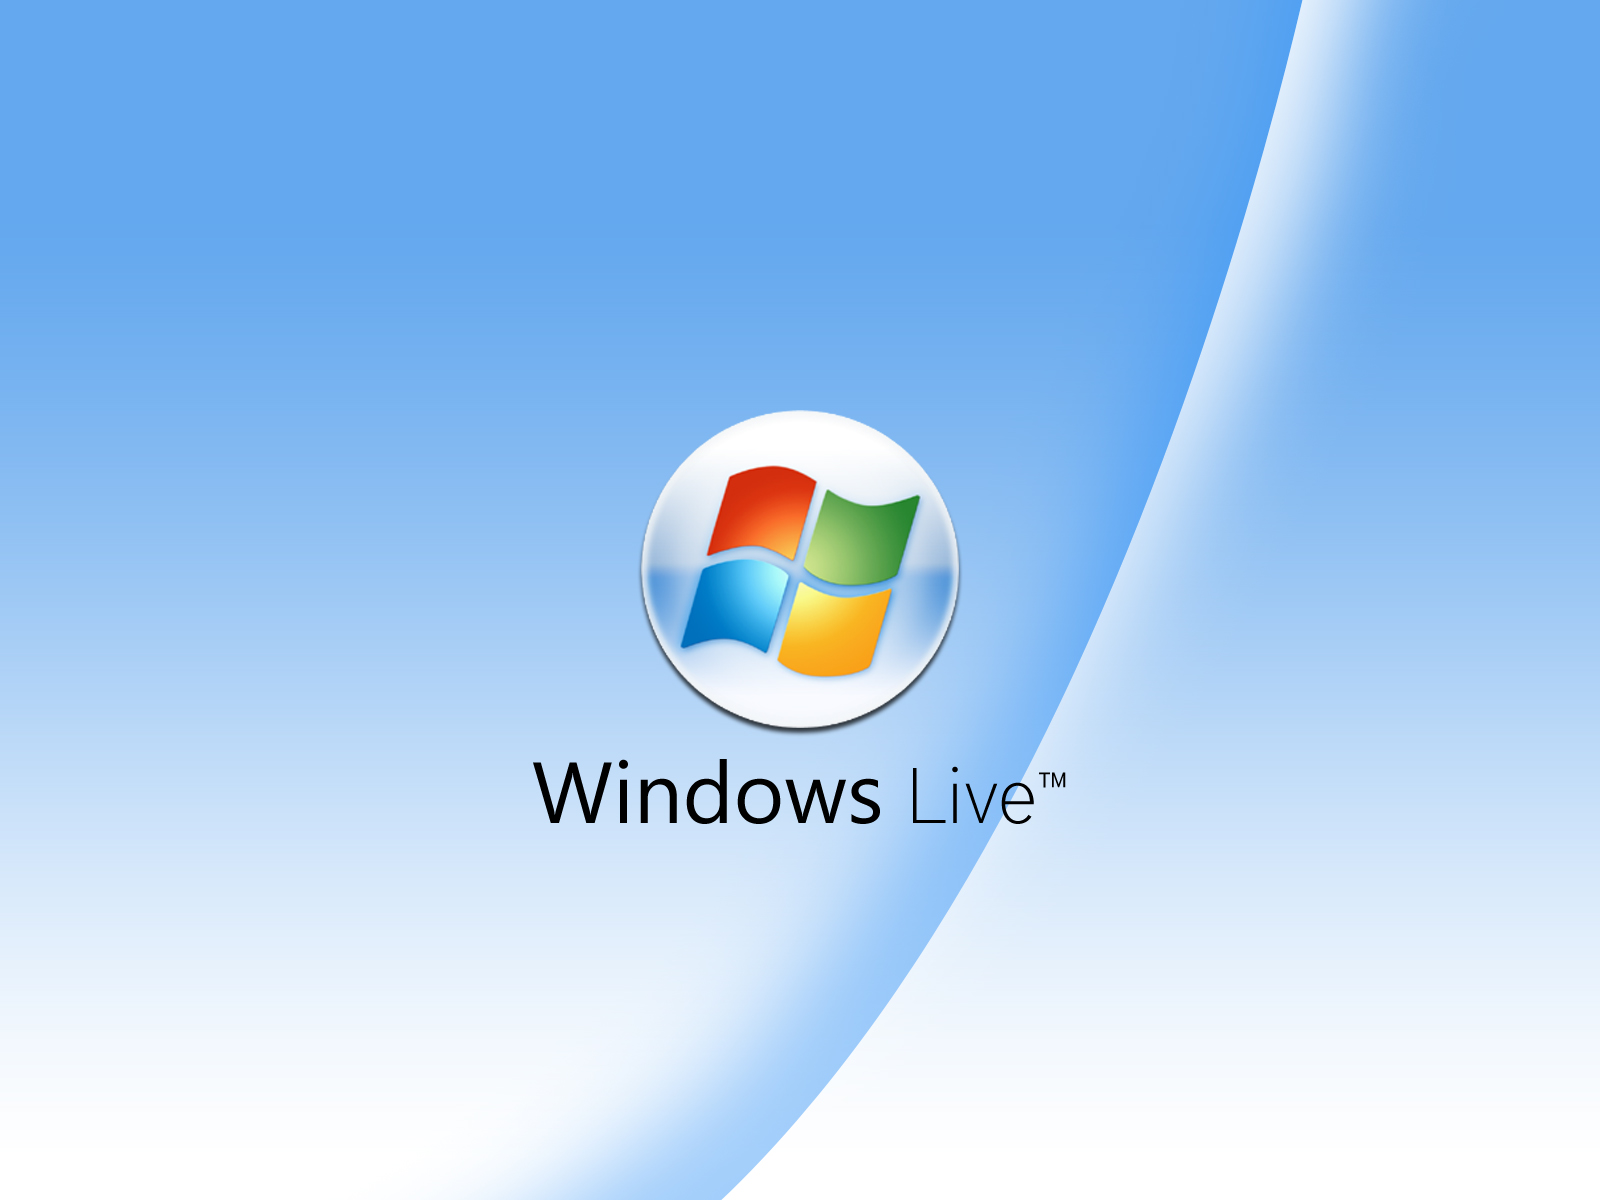 Live Wallpapers for Windows 7 Windows 8 Windows Vista and Windows XP 1600x1200